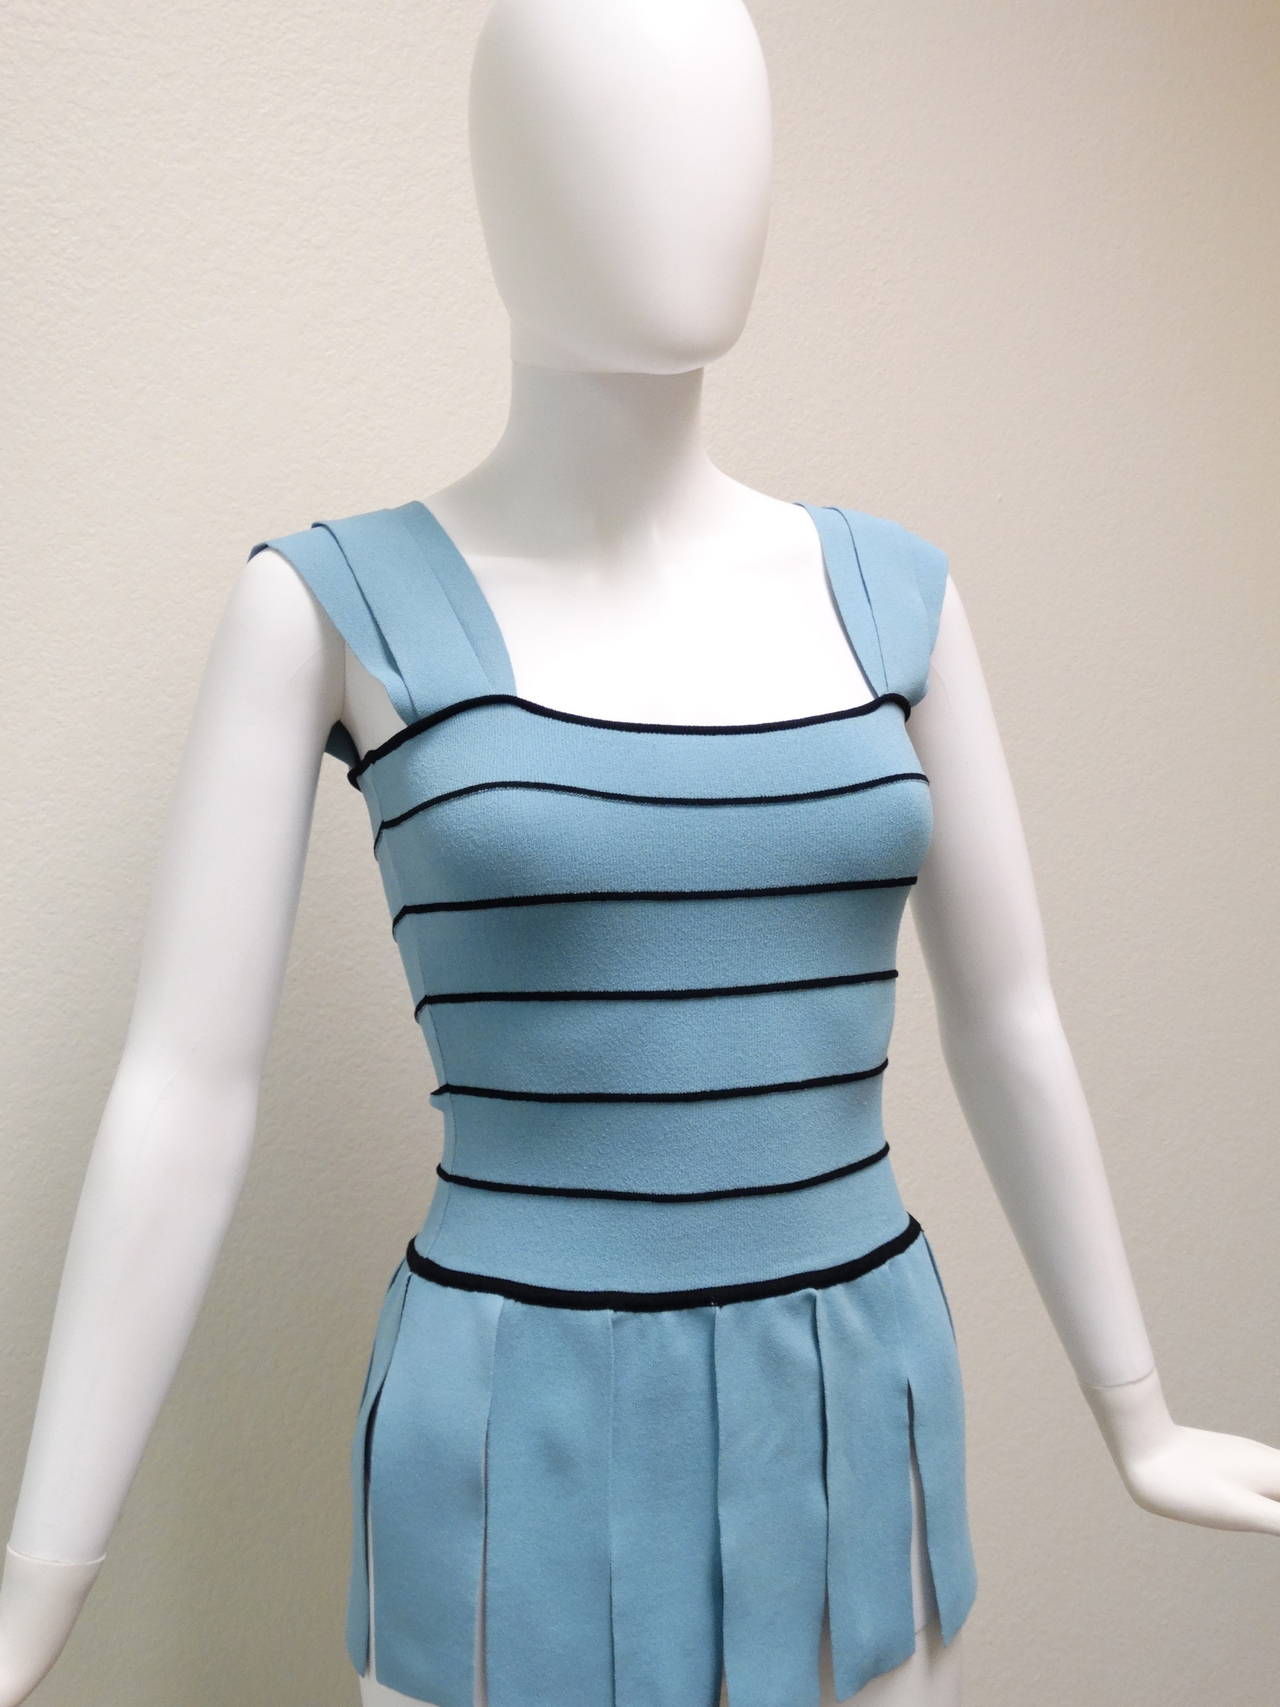 """1990s Moschino """"Roman CarWash"""" Bandage Bodycon Top In New never worn Condition For Sale In Scottsdale, AZ"""